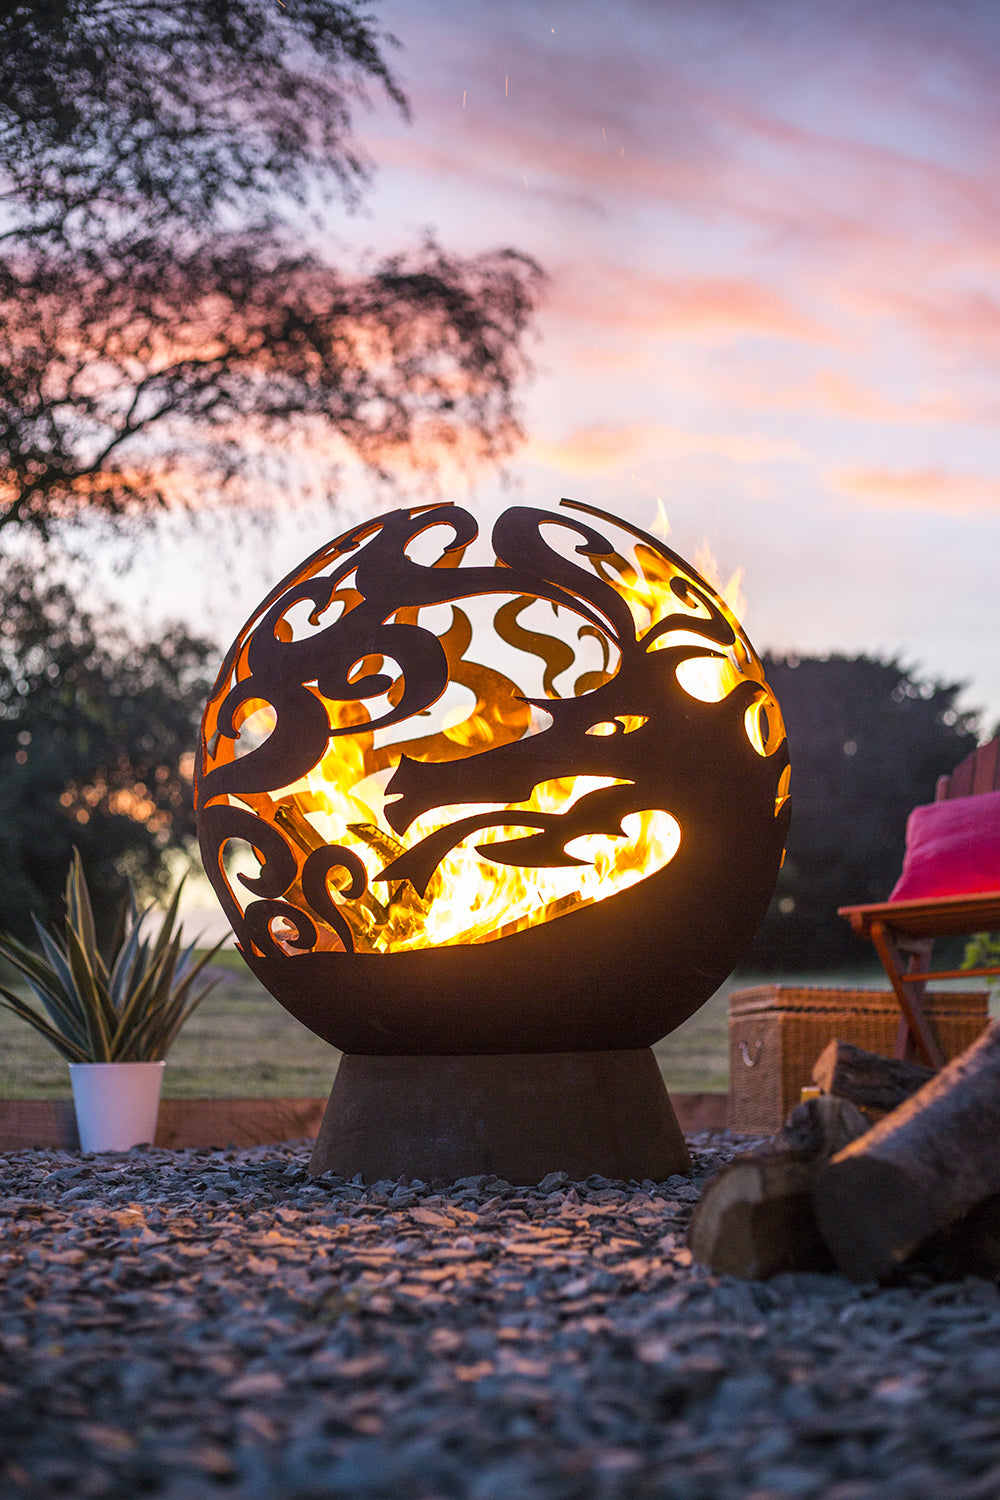 La Hacienda Oxidised Fire Globe Firepit Firebowl Outdoor Patio Heater Heating